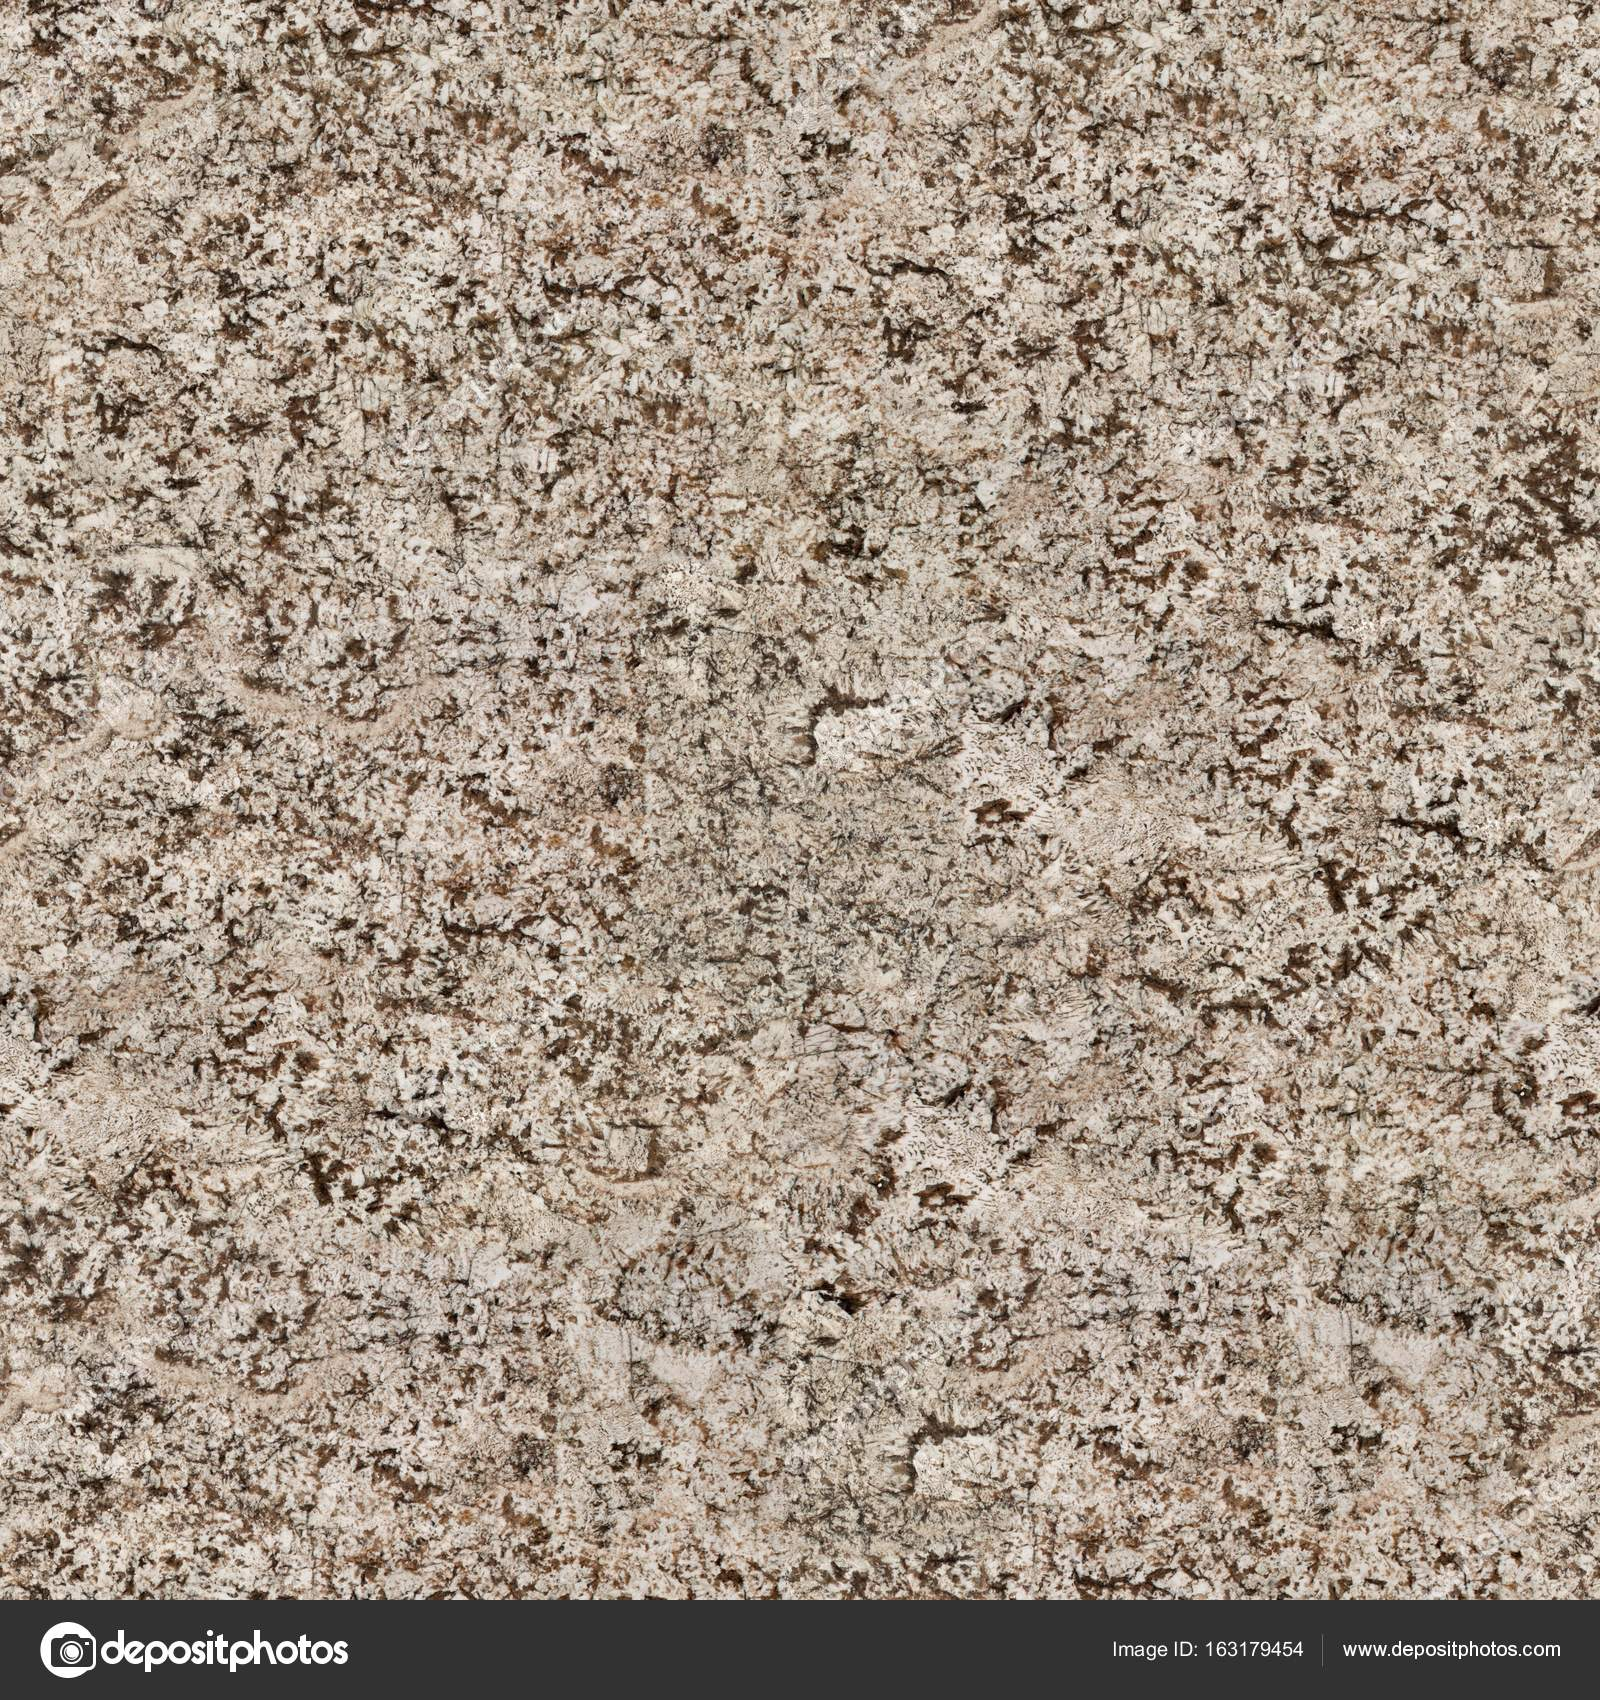 Brown Granite Texture Seamless Luxuty Beige And Brown Granite Texture Seamless Square Backgrou Stock Photo C Yamabikay 163179454